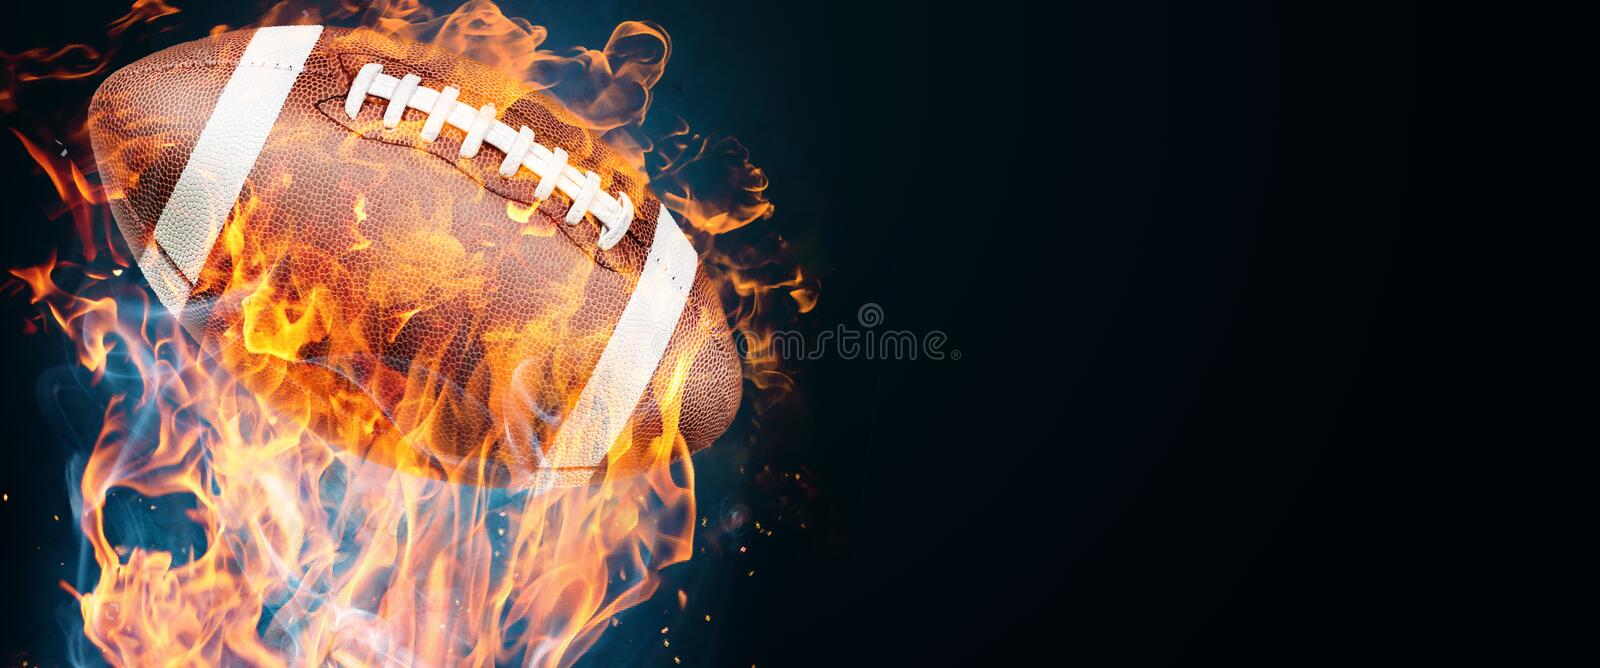 13 354 Football Banner Photos Free Royalty Free Stock Photos From Dreamstime